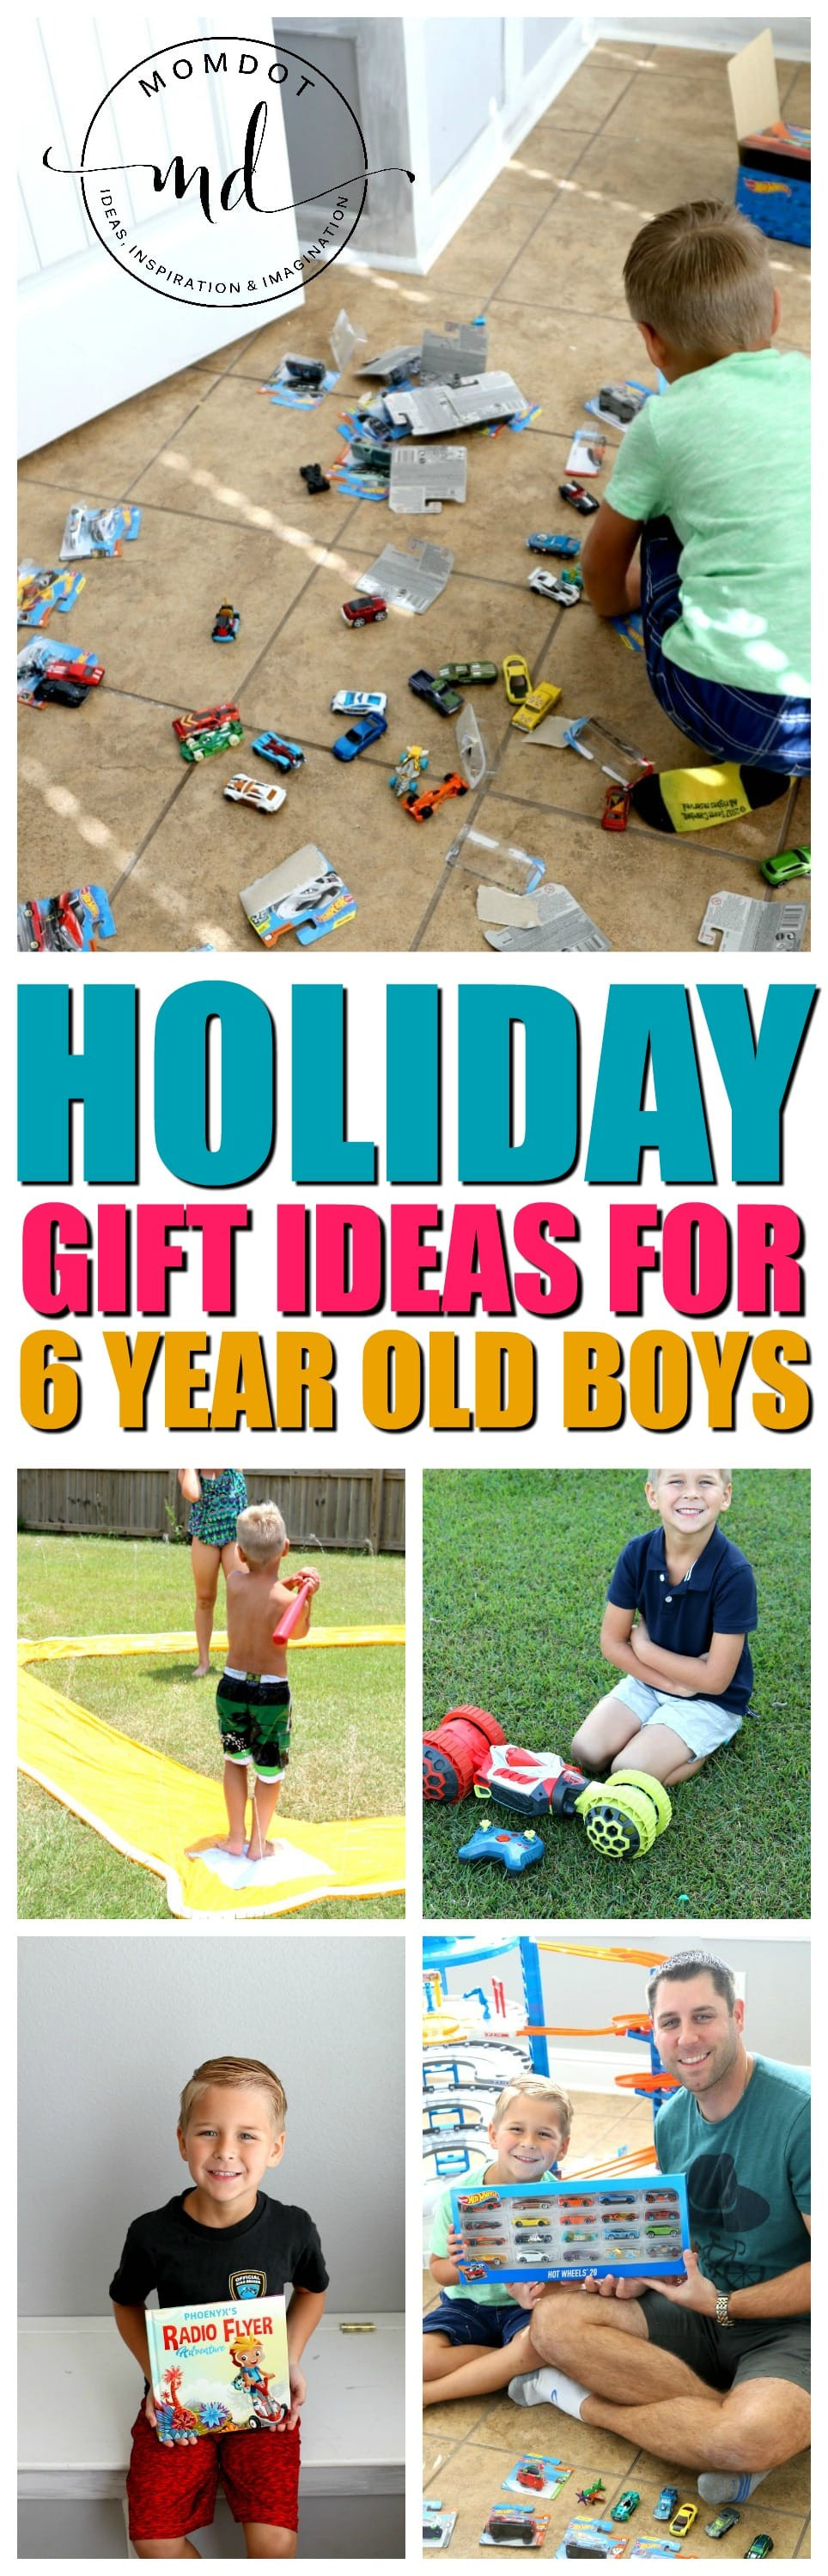 Best ideas about Gift Ideas For 6 Year Old Boys . Save or Pin Gift Ideas for 6 Year Old Boys Now.